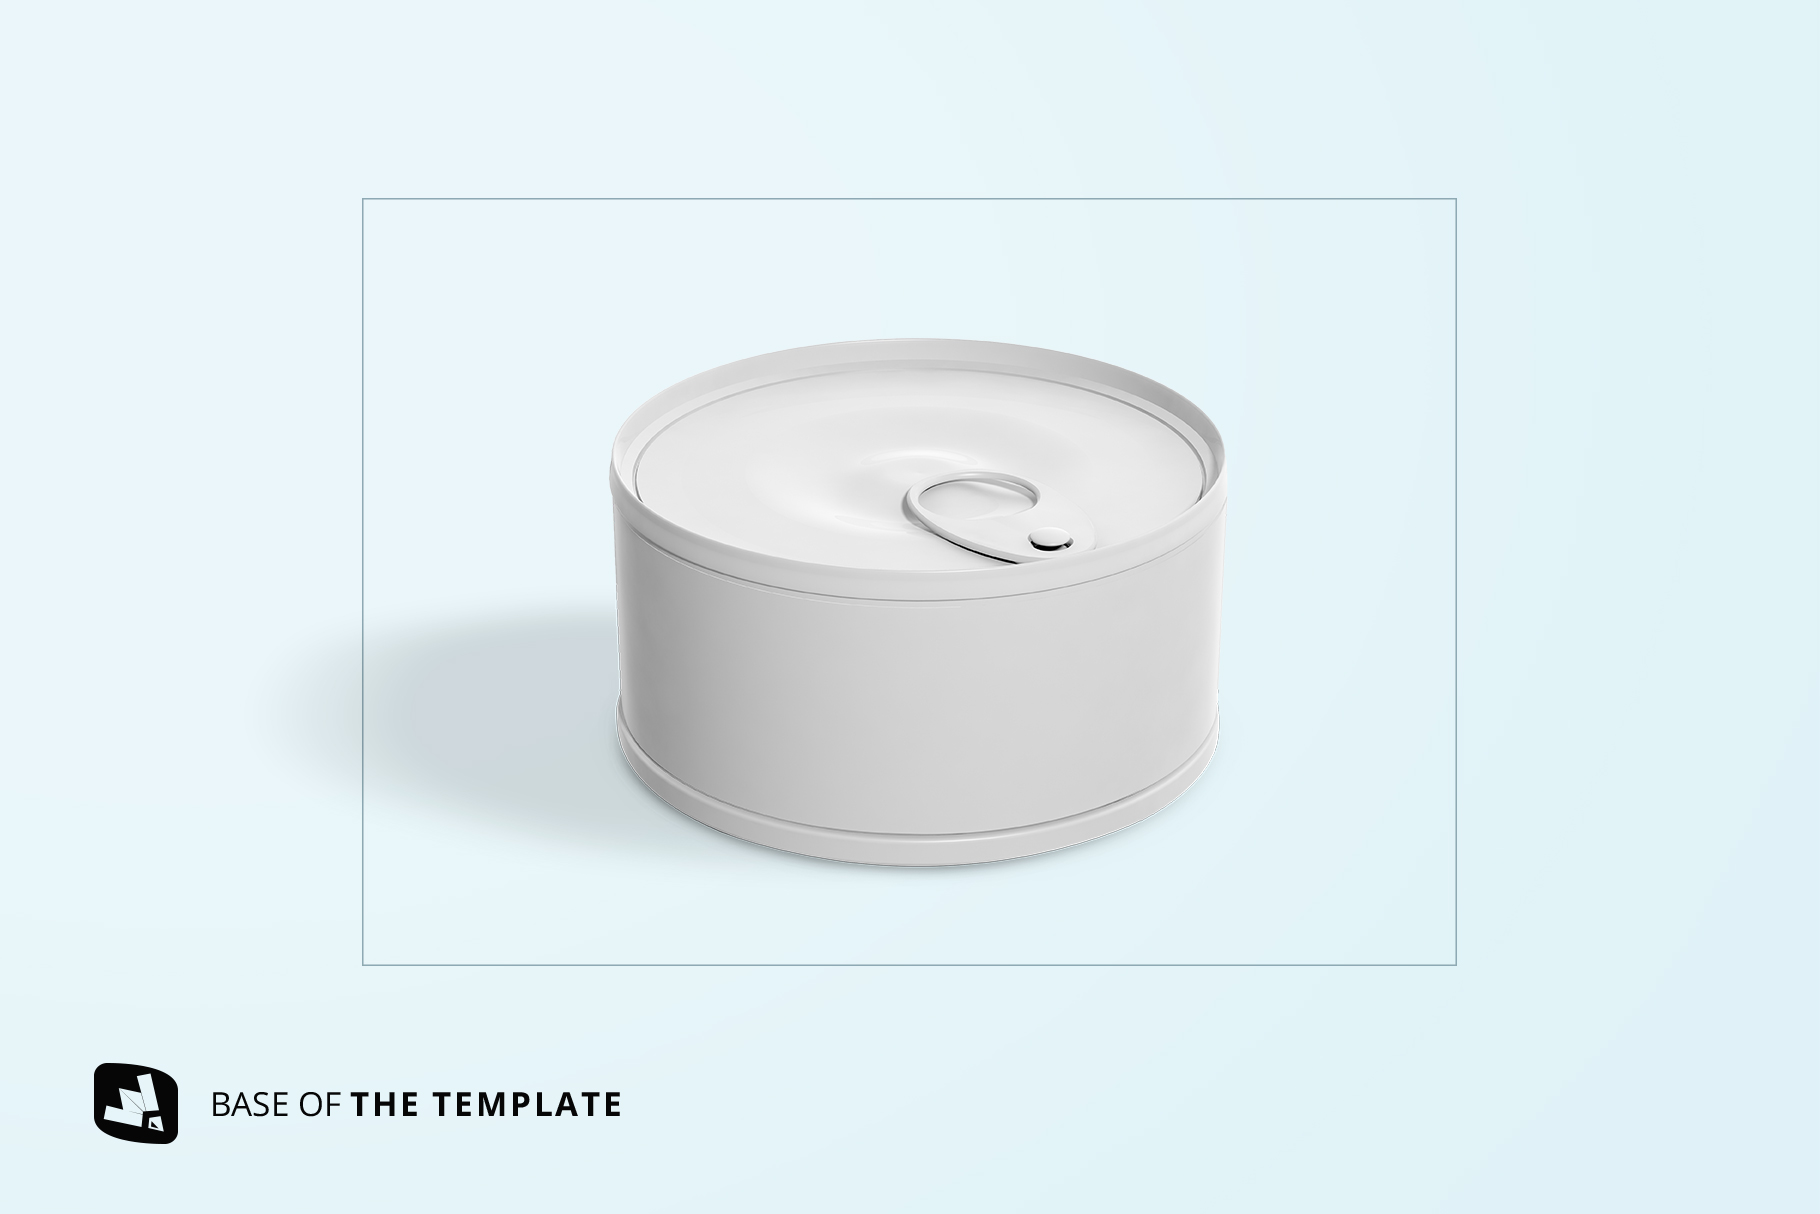 base image of the circular canned food packaging mockup